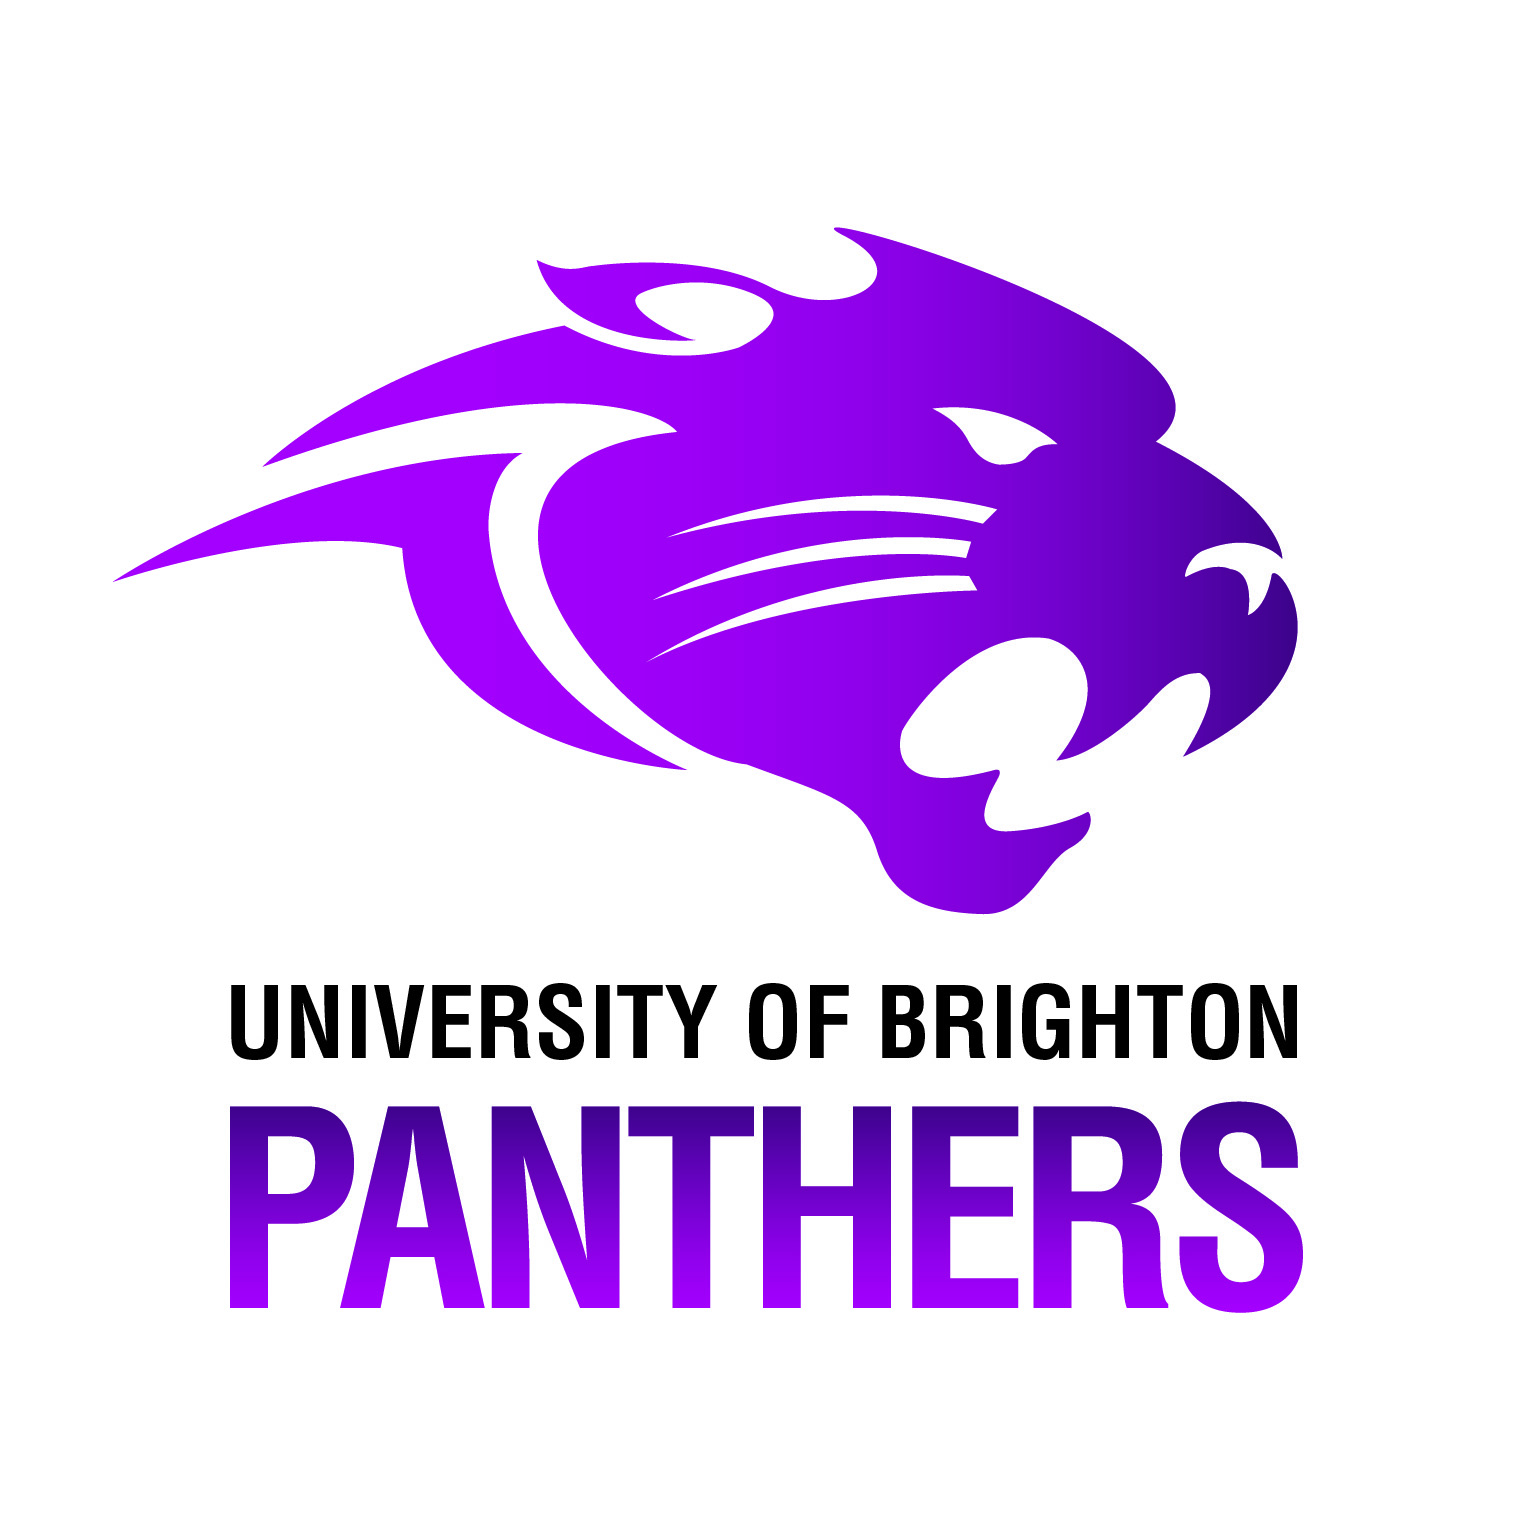 BrightonPanthers masterlogo cmyk